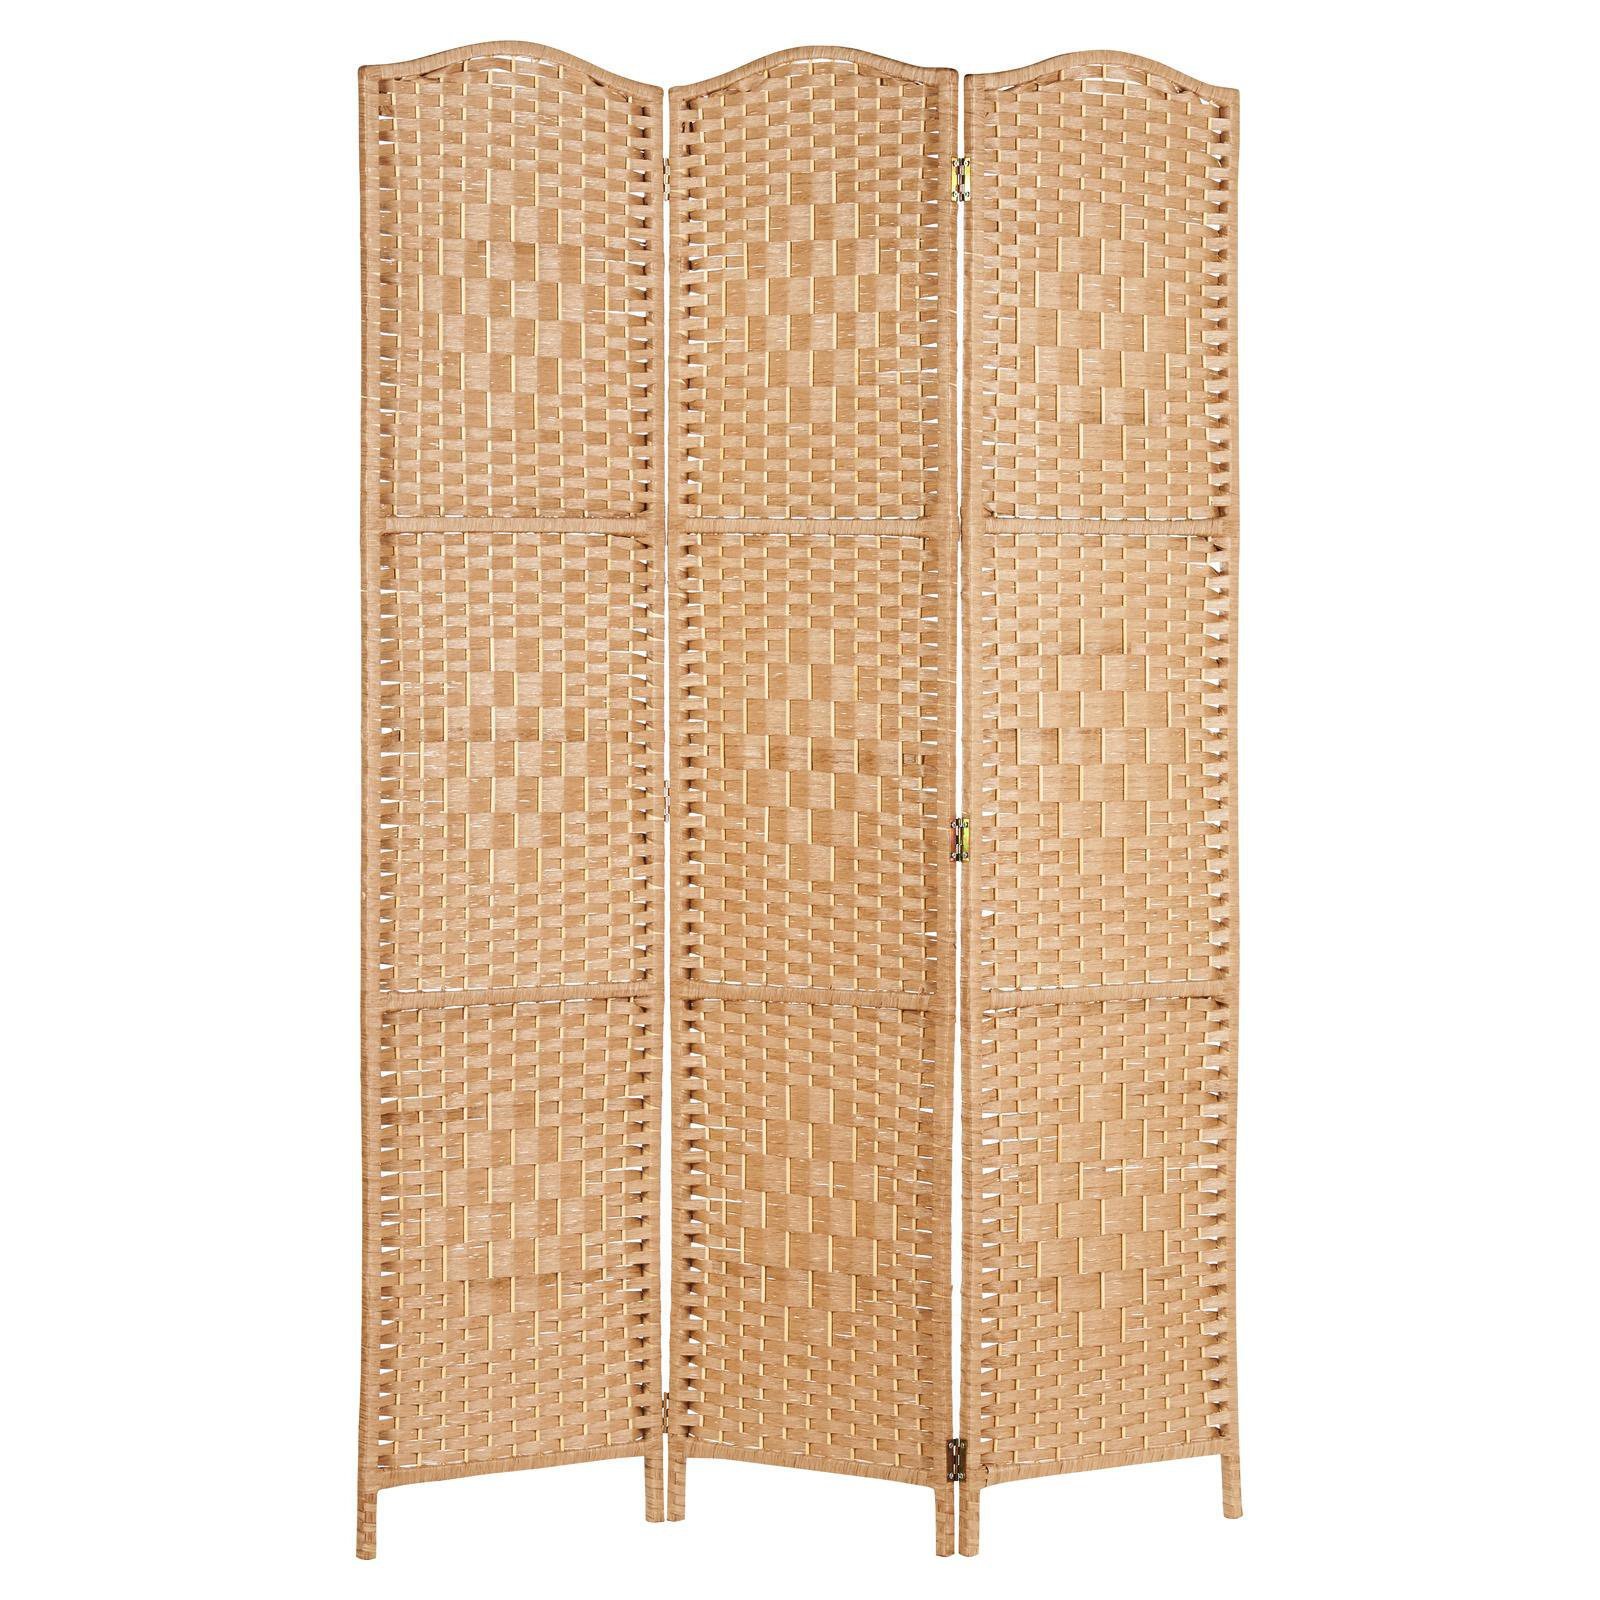 image-Hartleys Solid Weave Hand Made Wicker Room Divider - Natural - 3 Panel